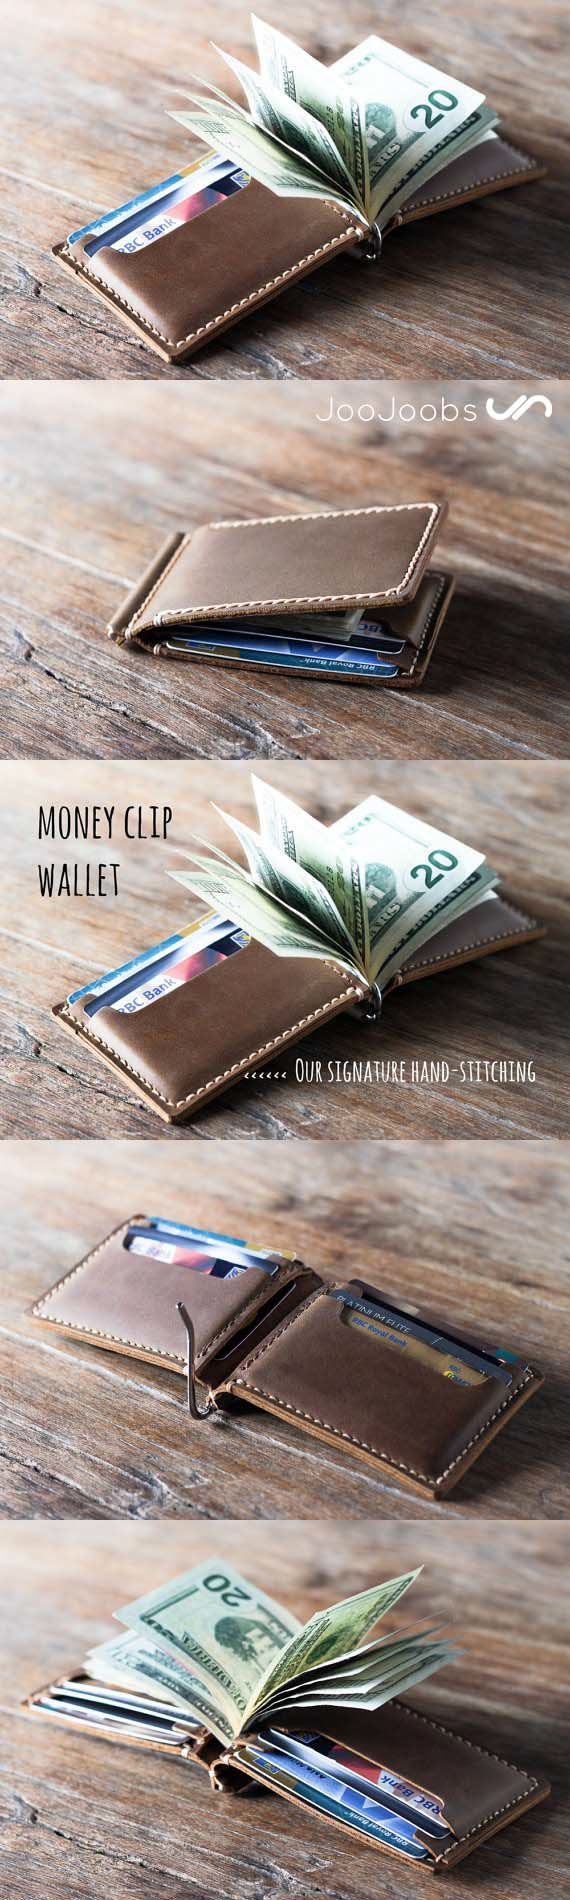 This leather money clip wallet is handmade and hand-stitched.  Inside there are 4 card slots which can hold 2 cards each for a total of 8 cards.  Instead of a cash pocket, we have replaced it with an easy to use, money clip.